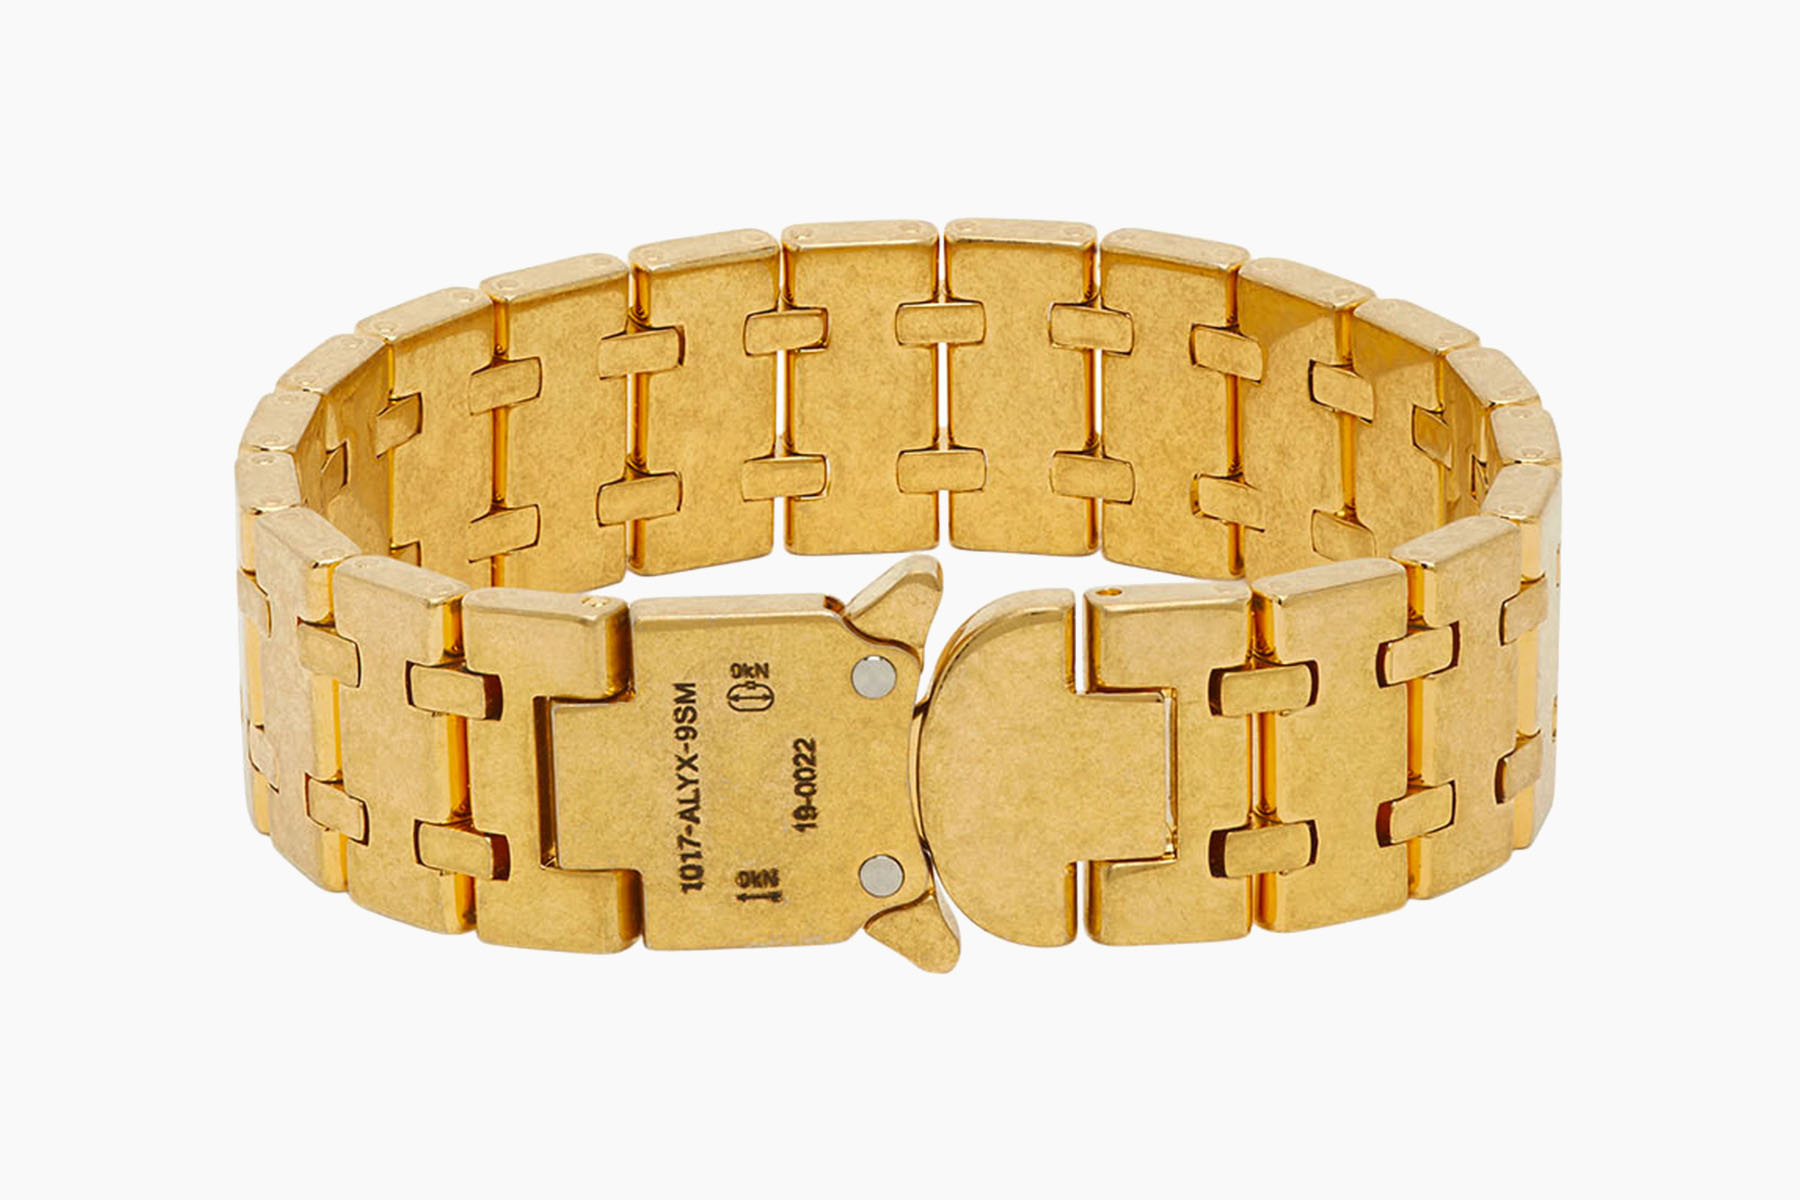 1017 ALYX 9SM Gold Royal Oak Bracelet